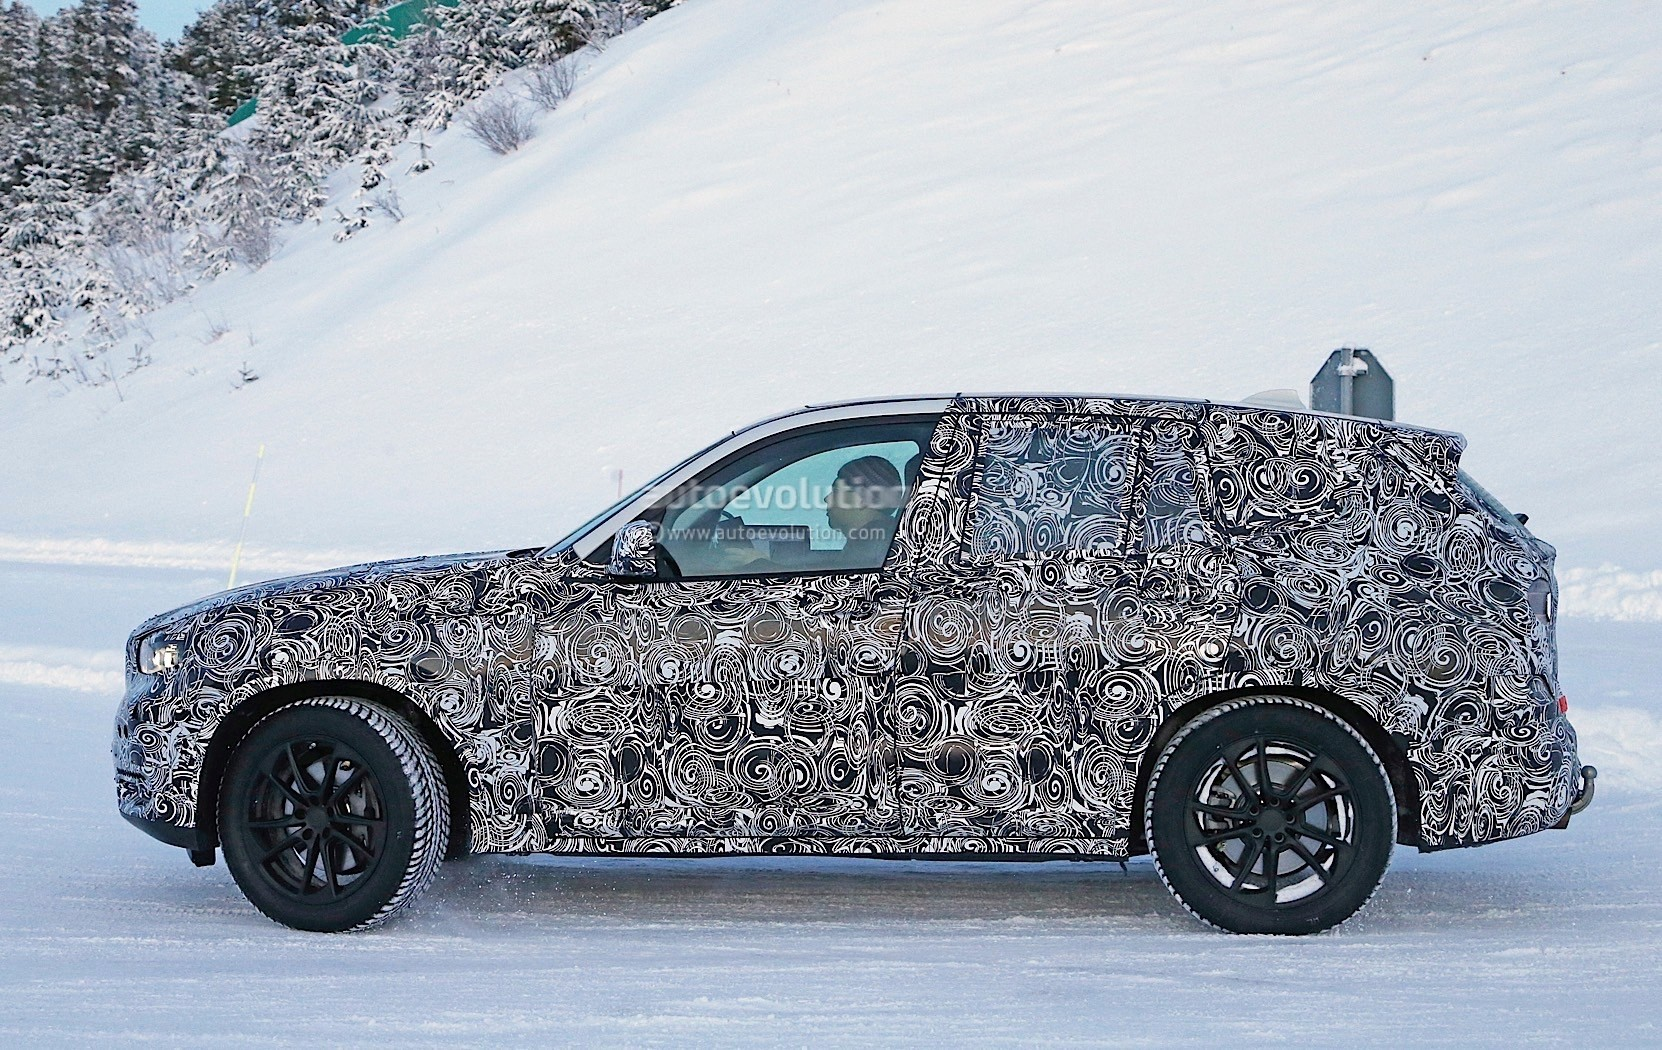 bmw-x3-spy​-shots-rev​eal-a-bigg​er-body-fo​r-the-germ​an-suv-pho​to-gallery​_7